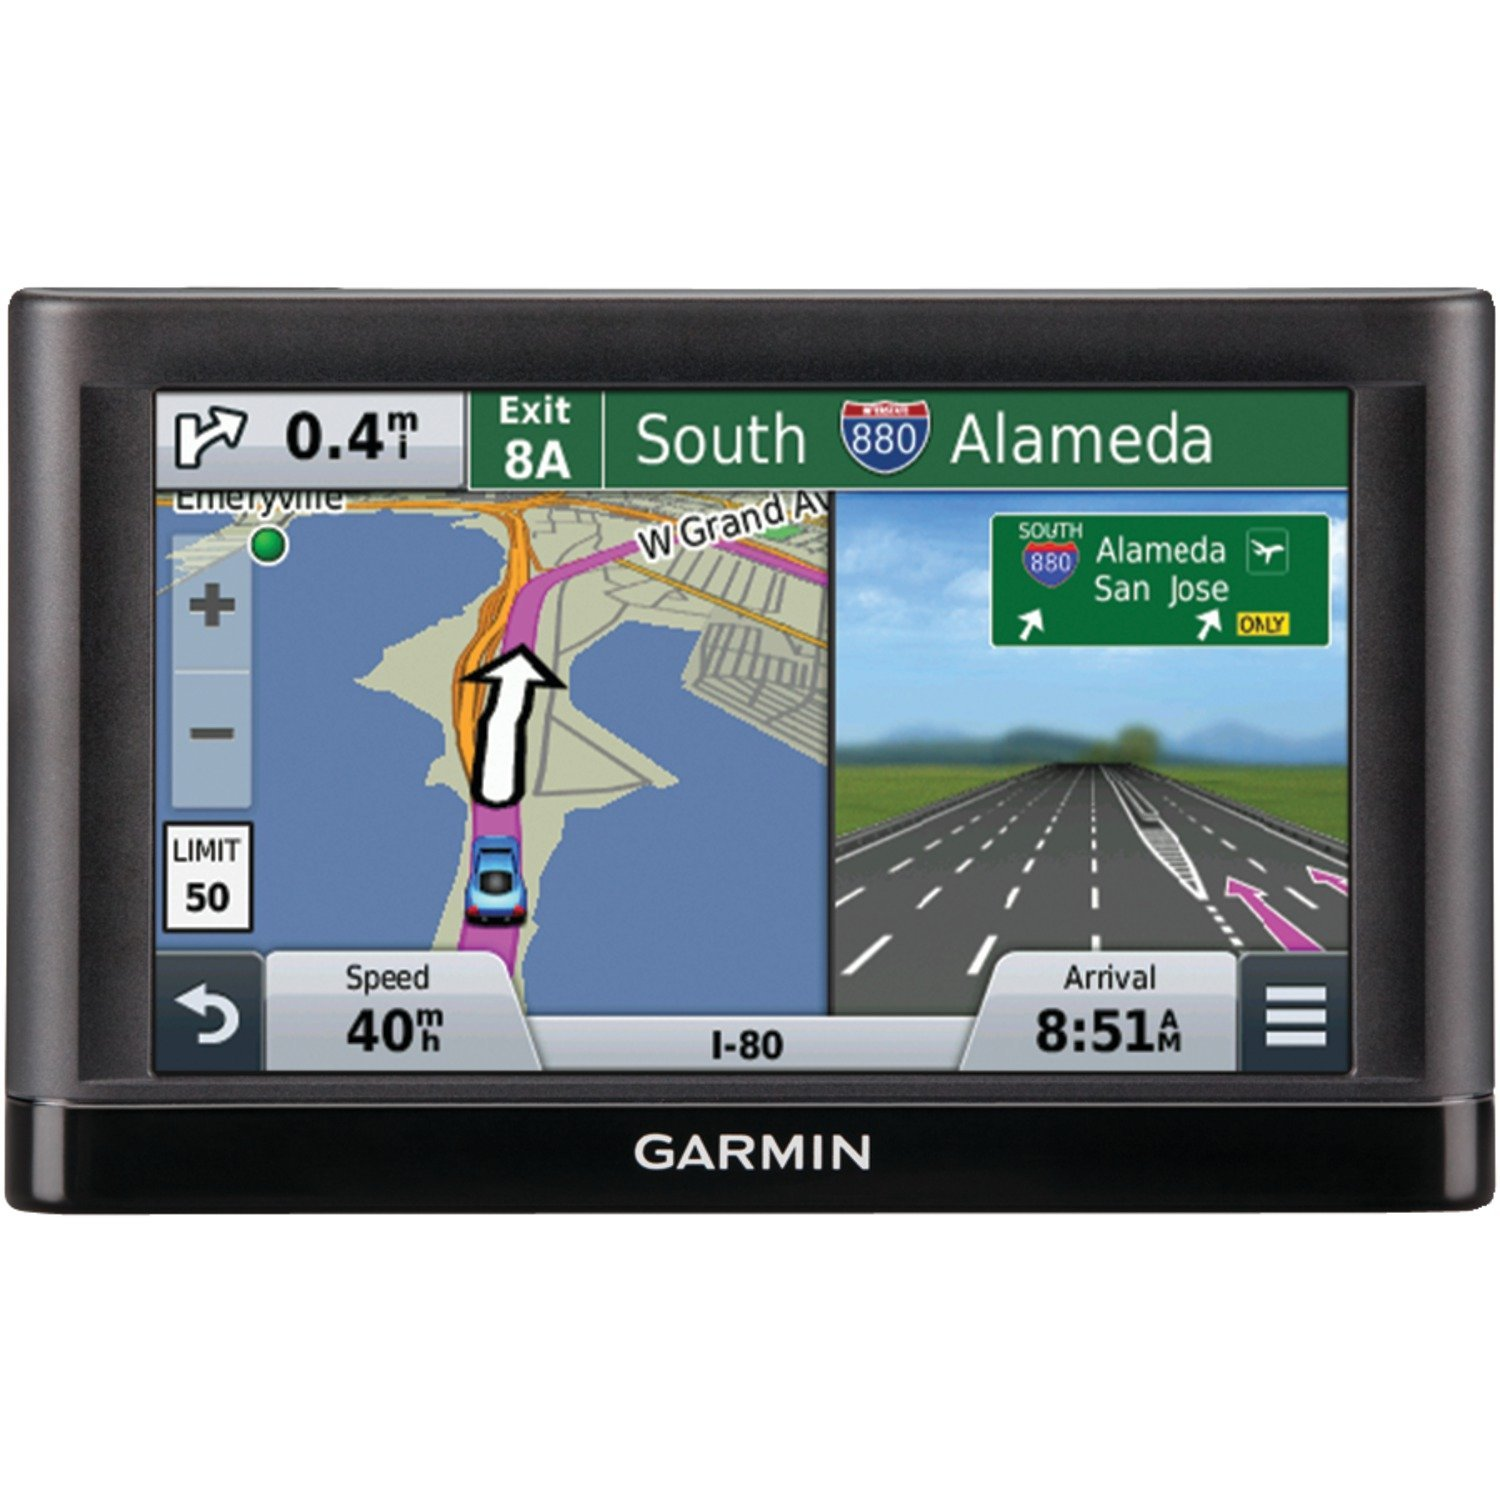 Garmin nüvi 55LMT GPS Navigators System with Spoken Turn-By-Turn Directions, Preloaded Maps